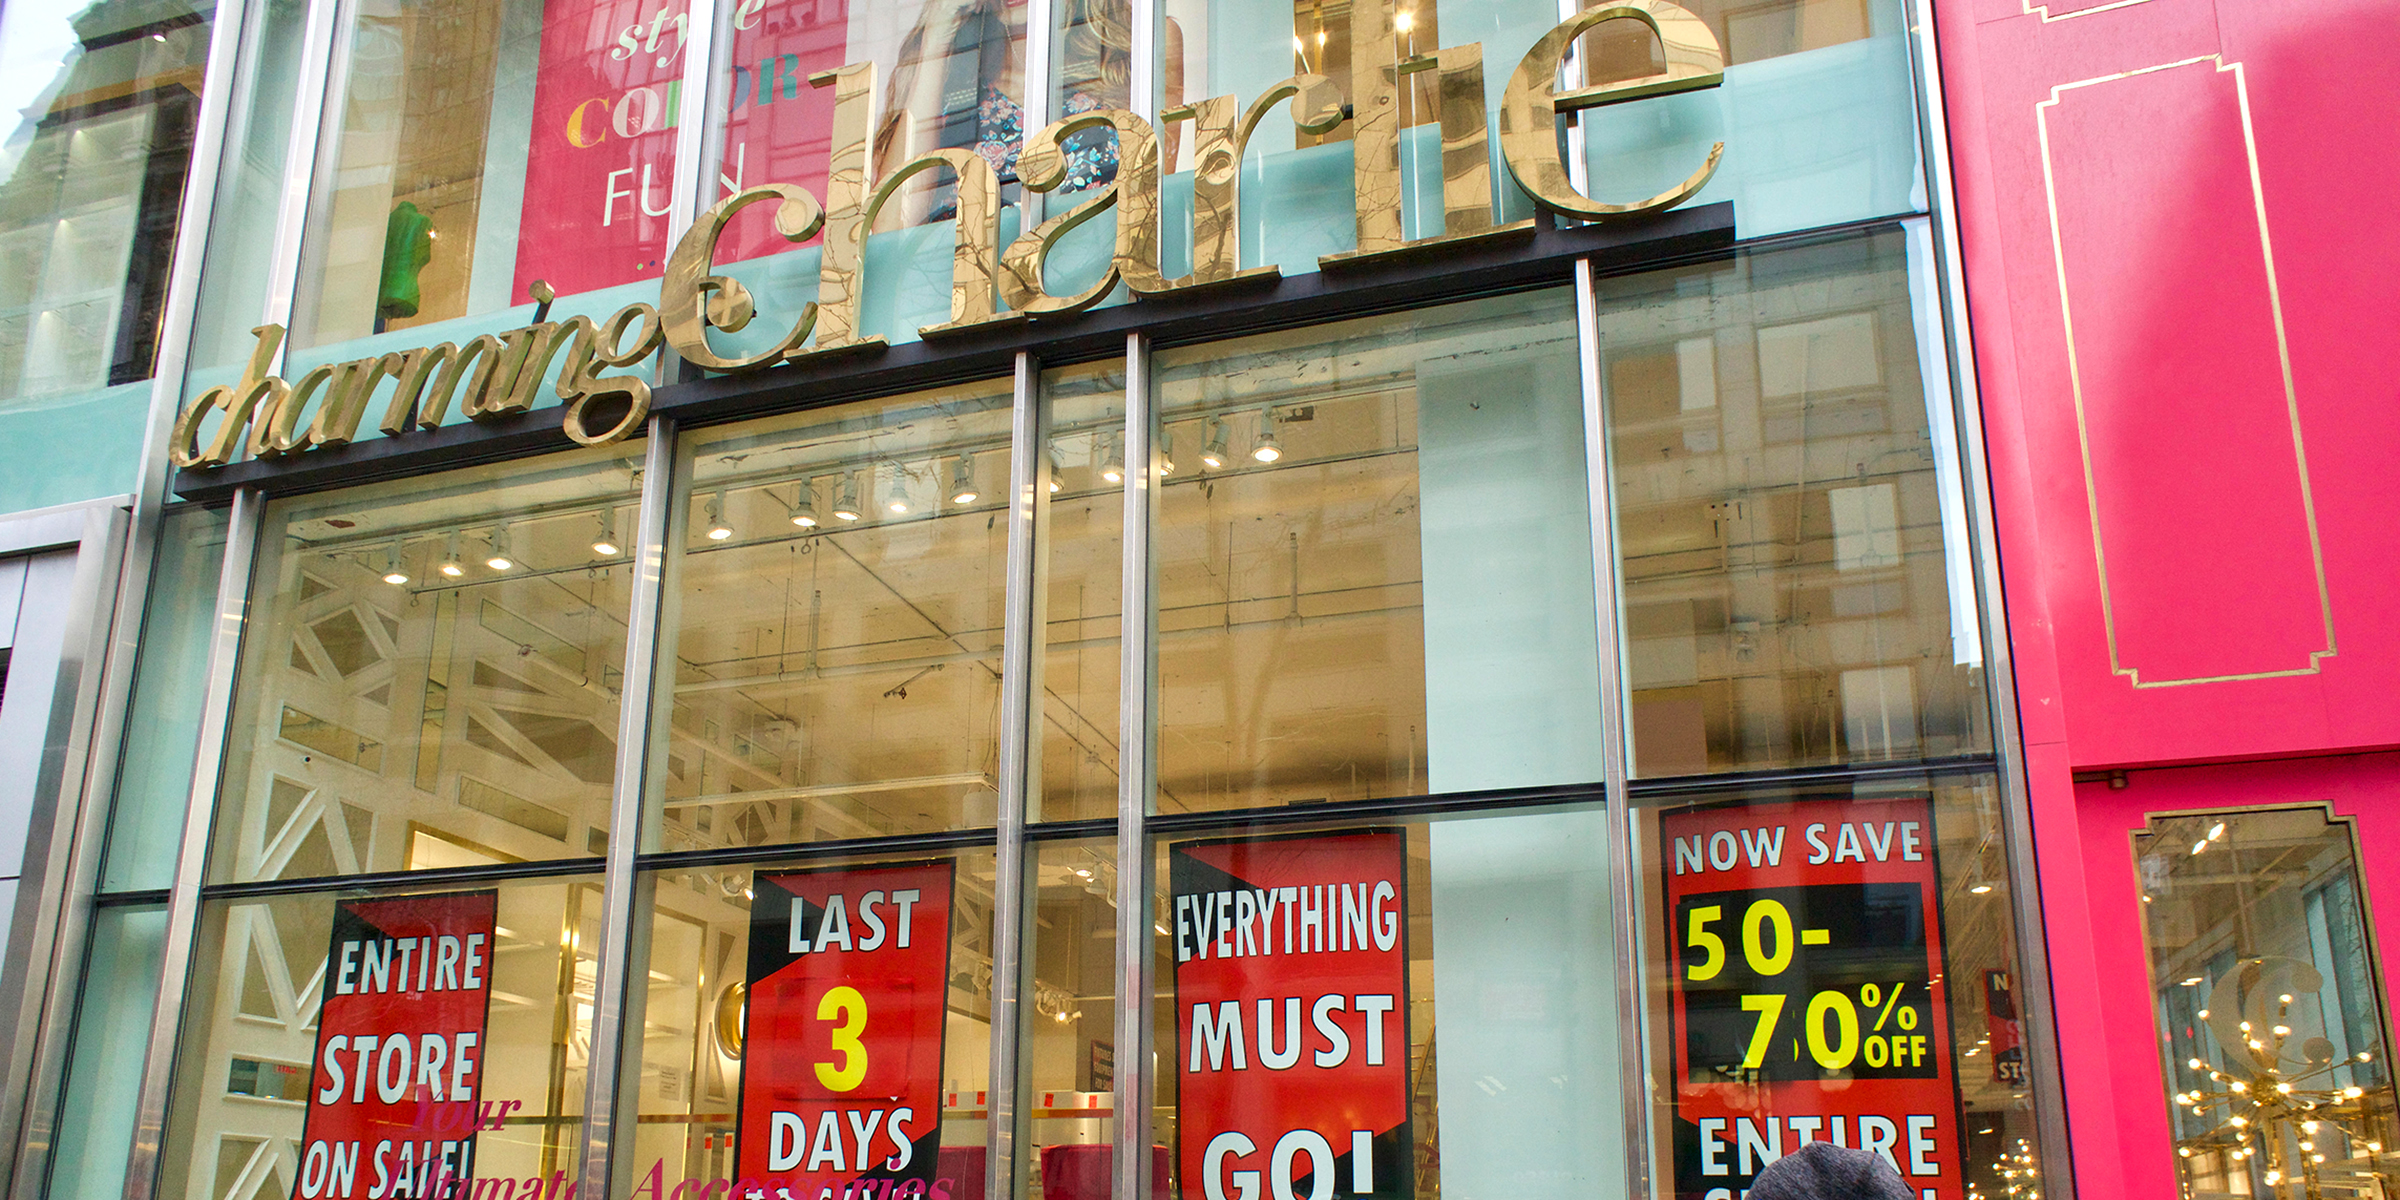 Fashion And Jewelry Chain Charming Charlie Closing All 261 Stores